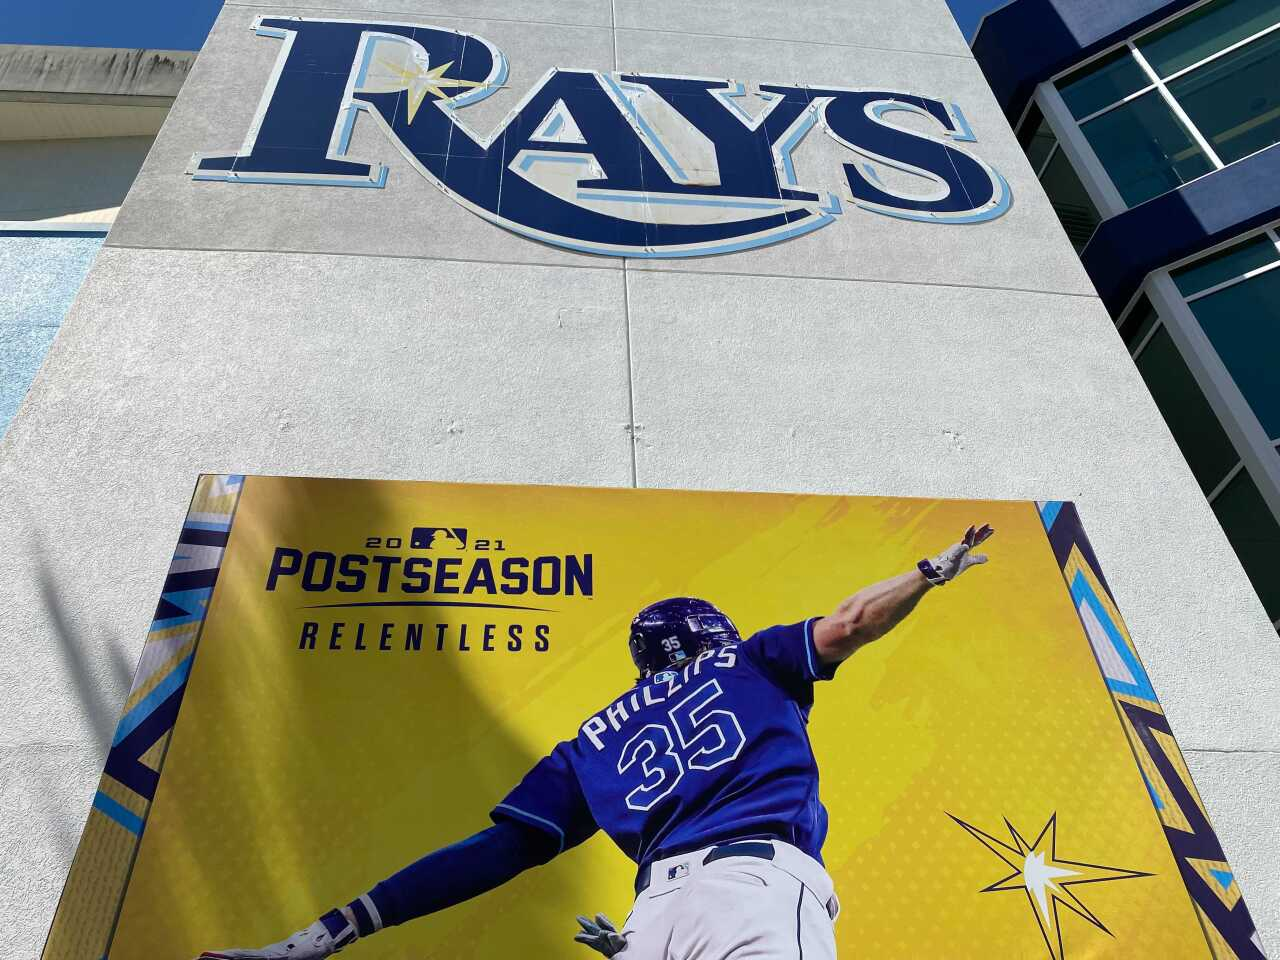 Tropicana Field on 10/4/2021 ahead of the MLB Playoffs